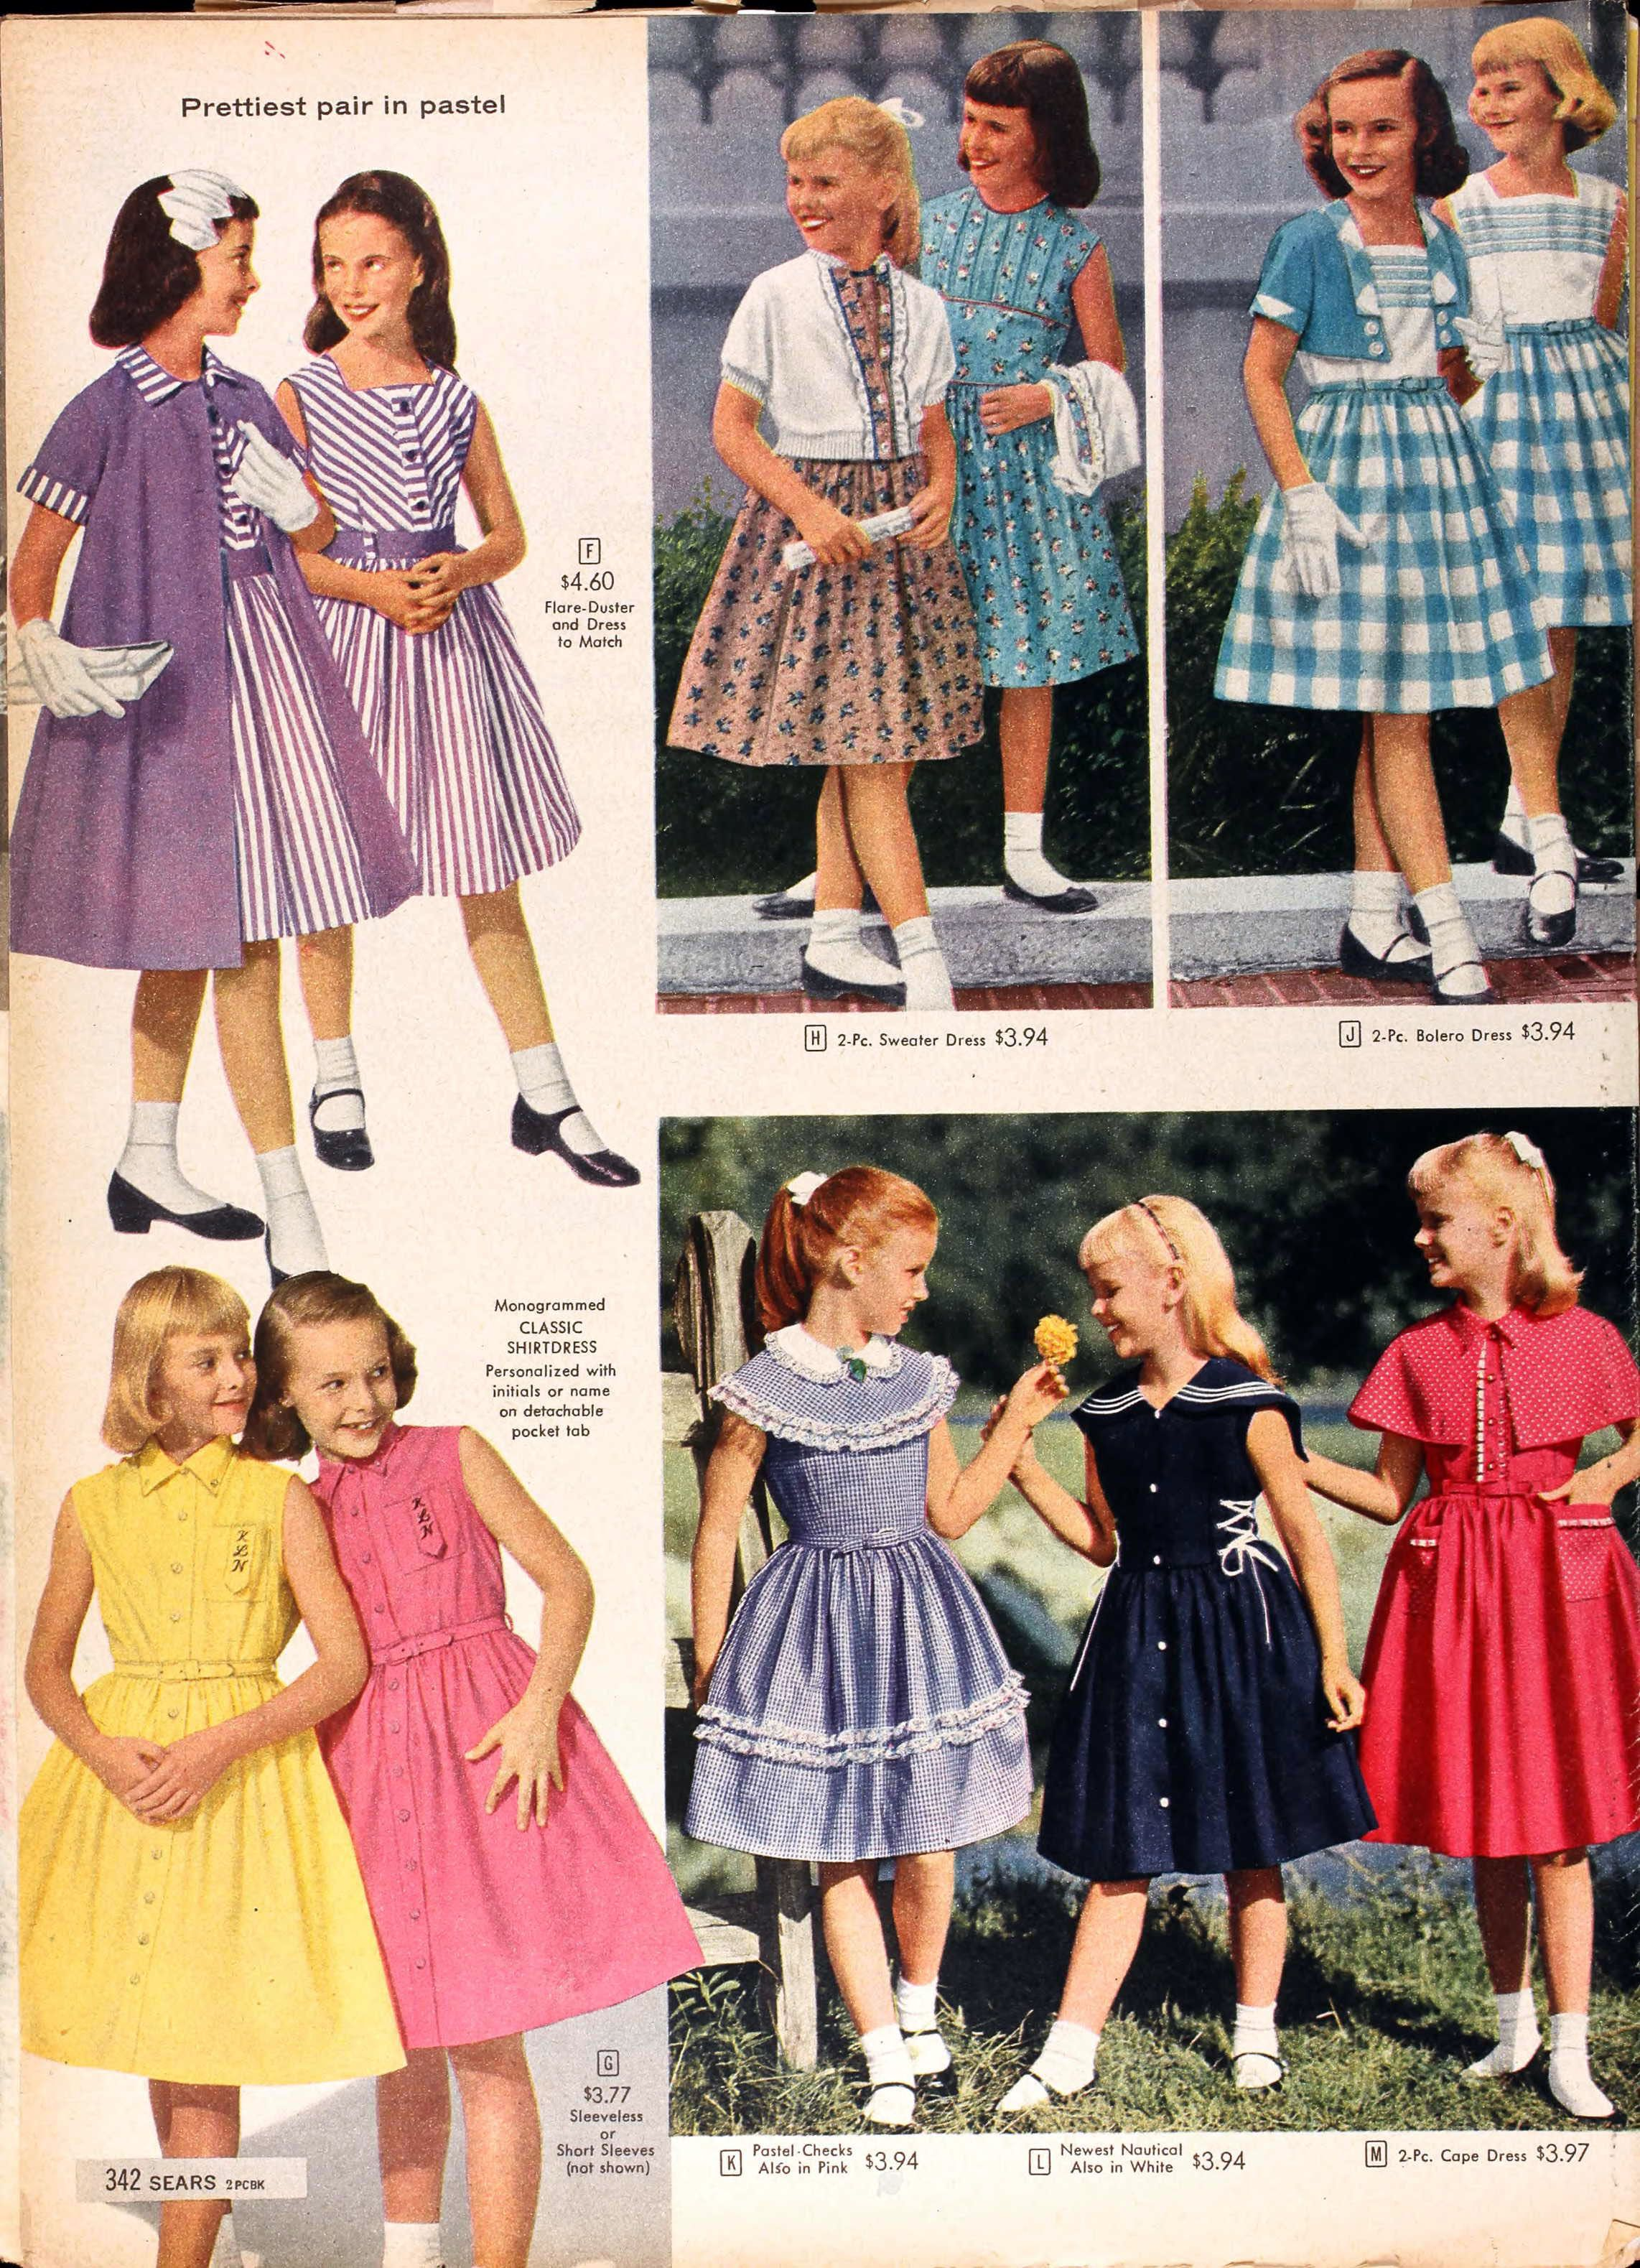 192c36e30a Sears Catalog, Spring/Summer 1958 - Girls' Dresses | 1950s in 2019 ...